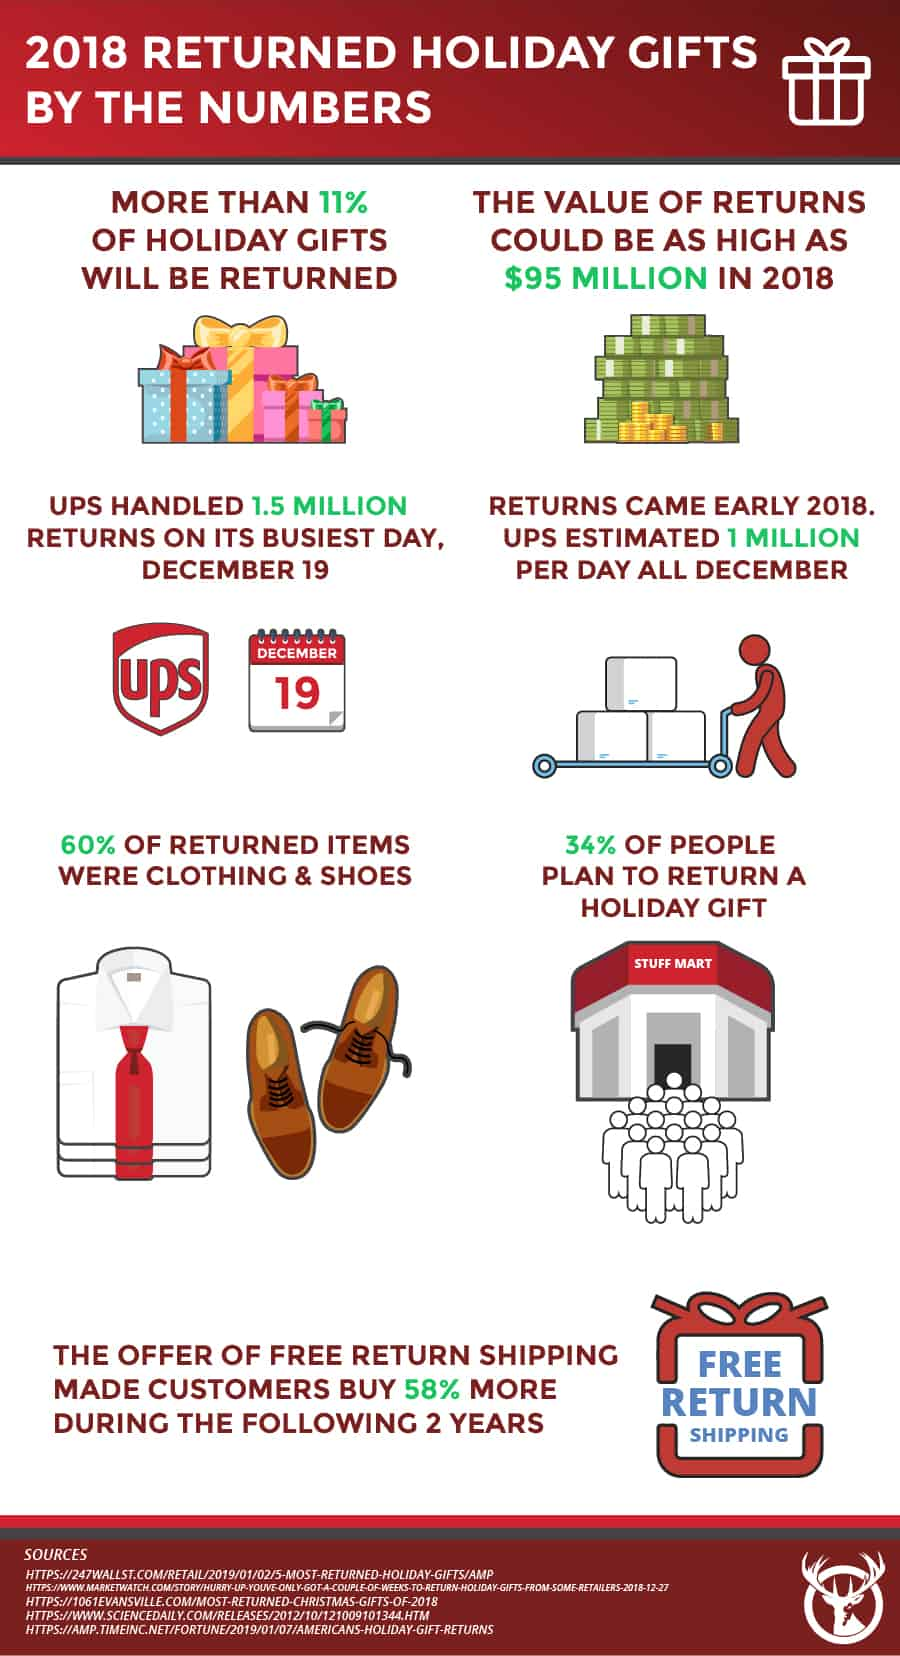 Holiday-fulfillment-returns-data-2018